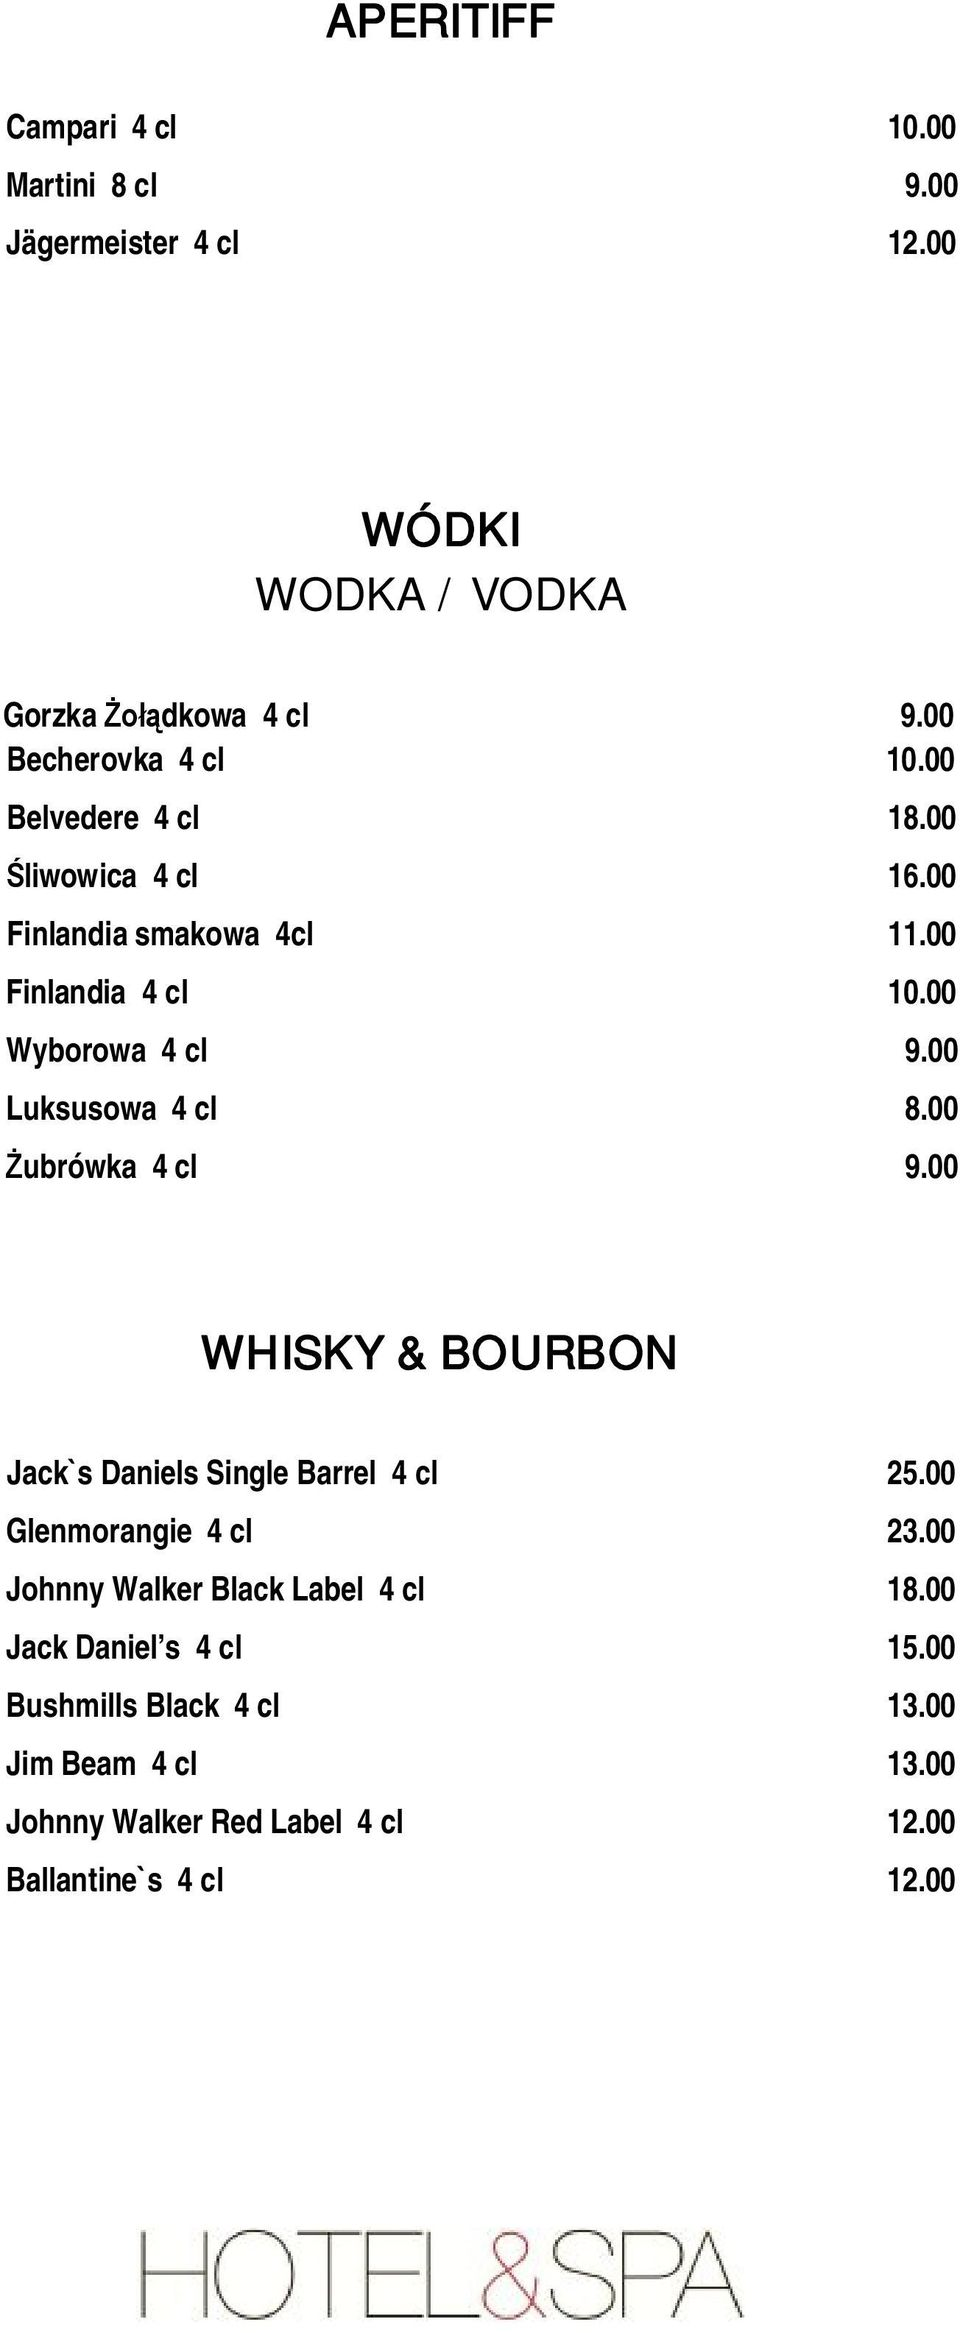 00 Luksusowa 4 cl 8.00 Żubrówka 4 cl 9.00 WHISKY & BOURBON Jack`s Daniels Single Barrel 4 cl 25.00 Glenmorangie 4 cl 23.